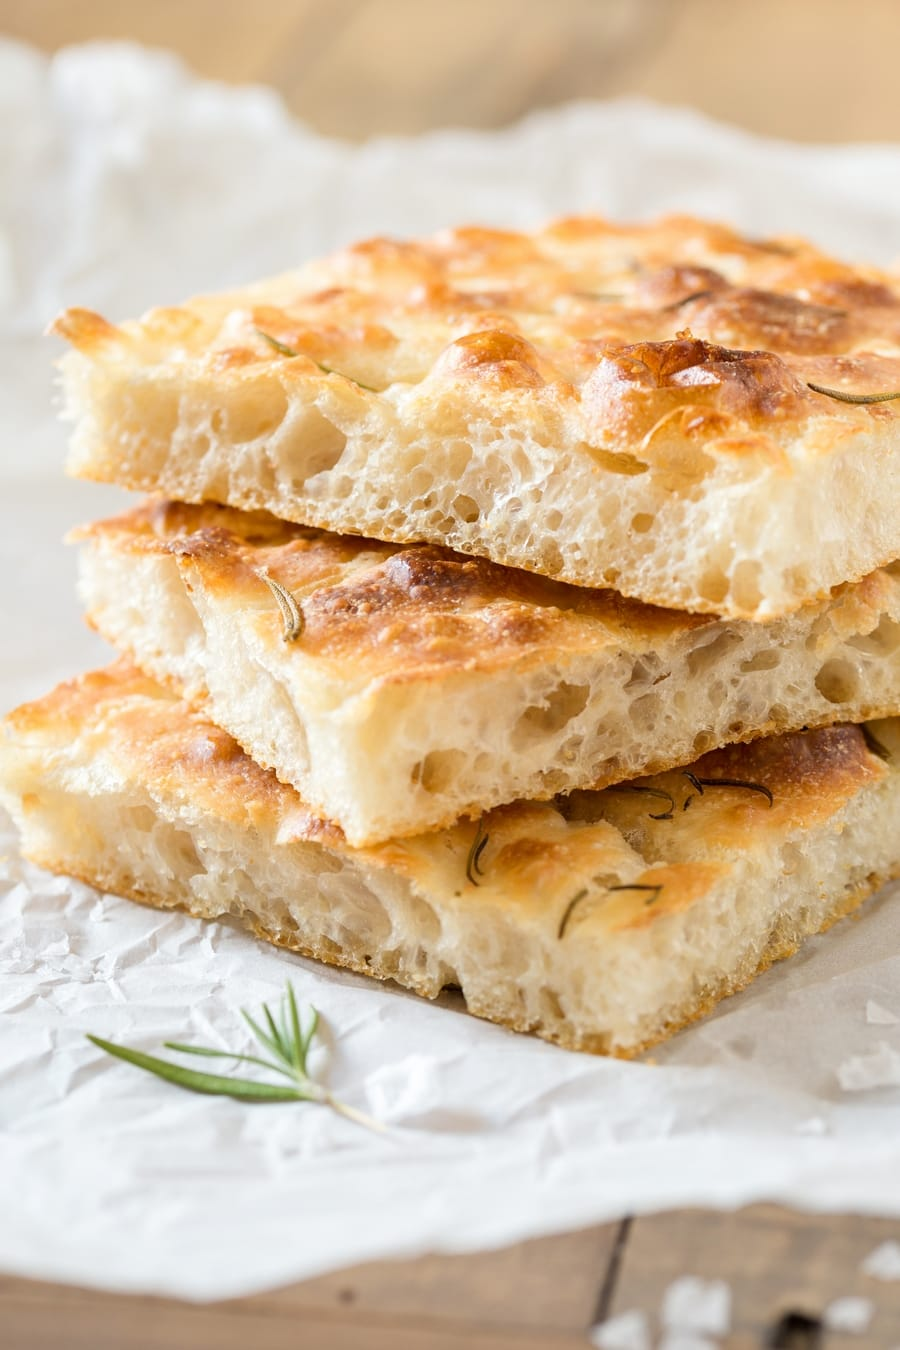 Slices of focaccia, stacked on white paper.